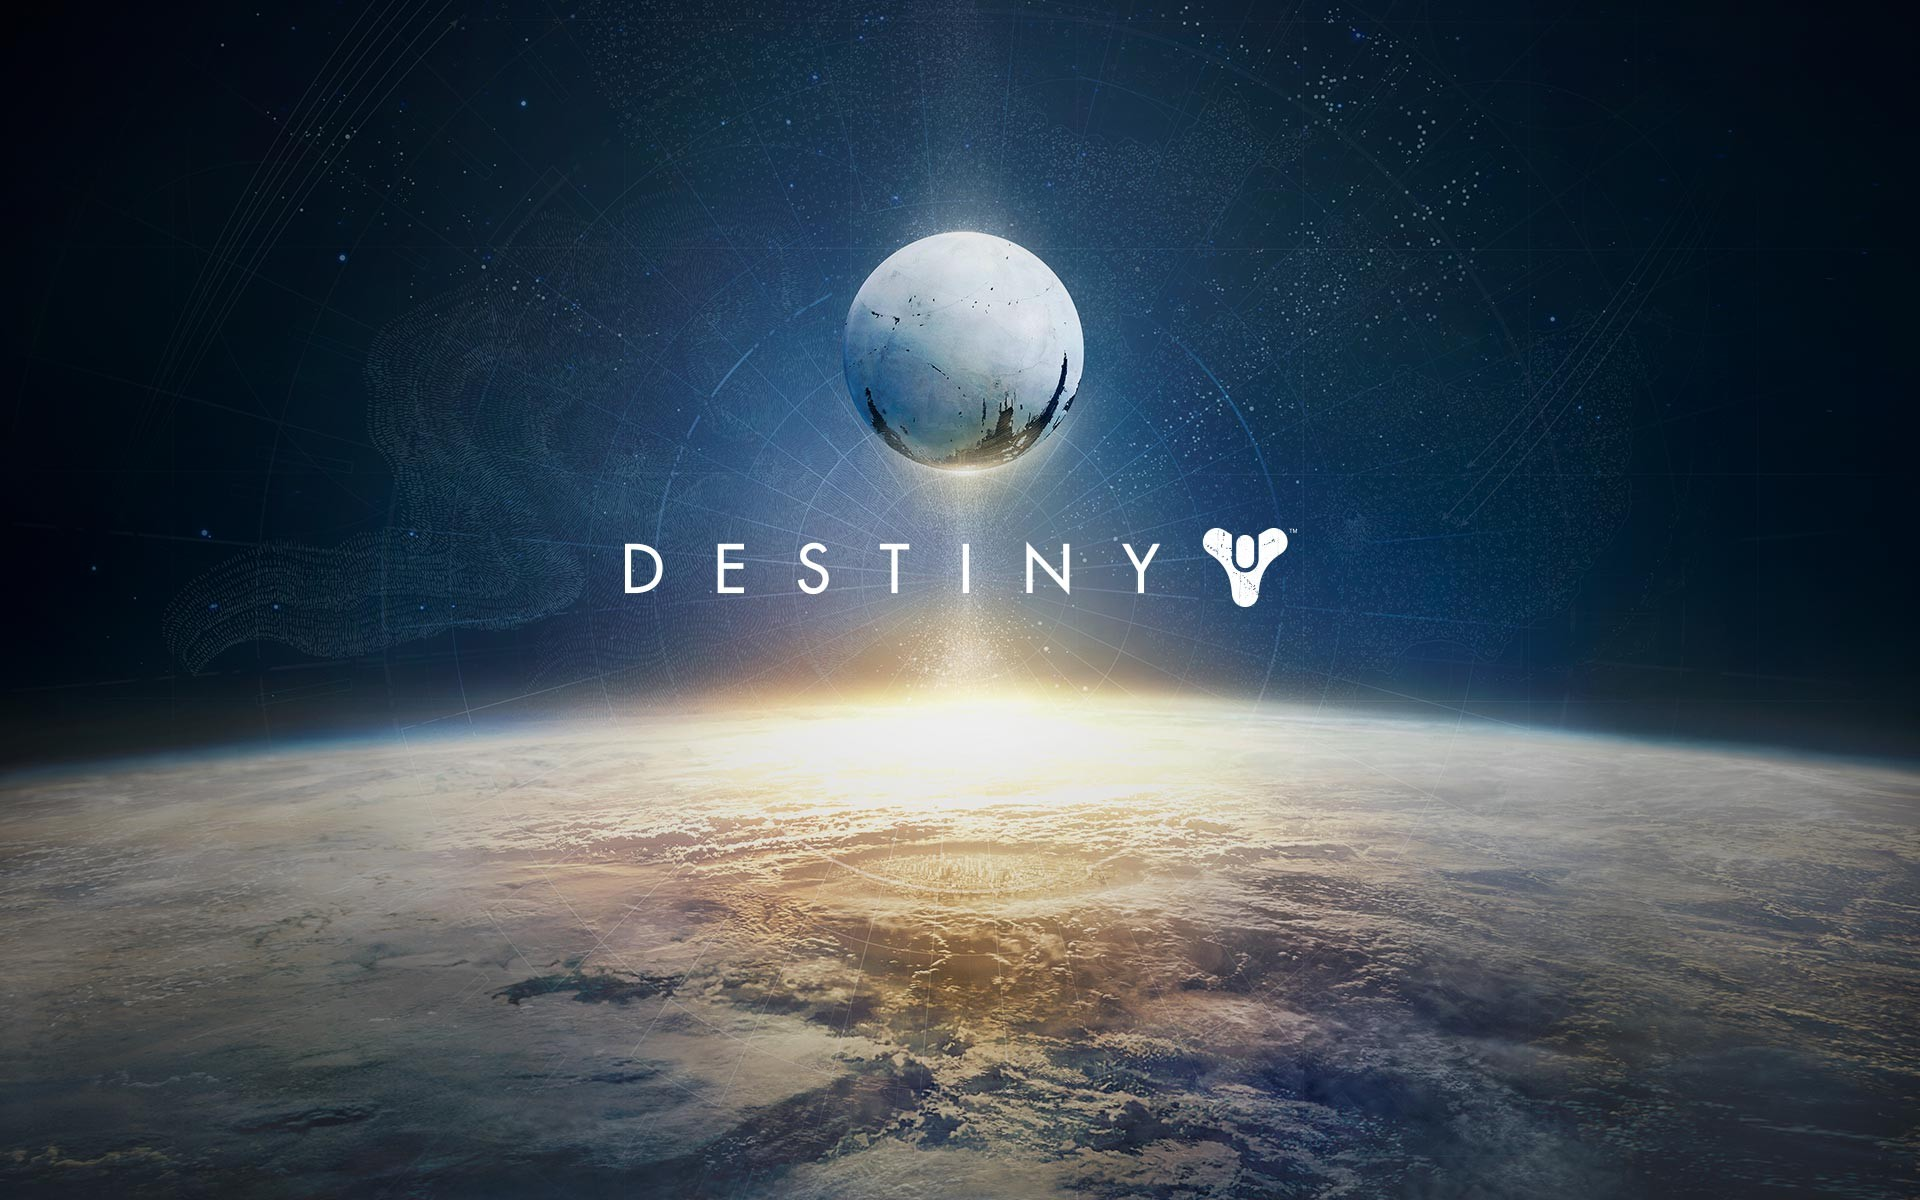 Destiny Logo wallpaper | 1920x1200 | #8094